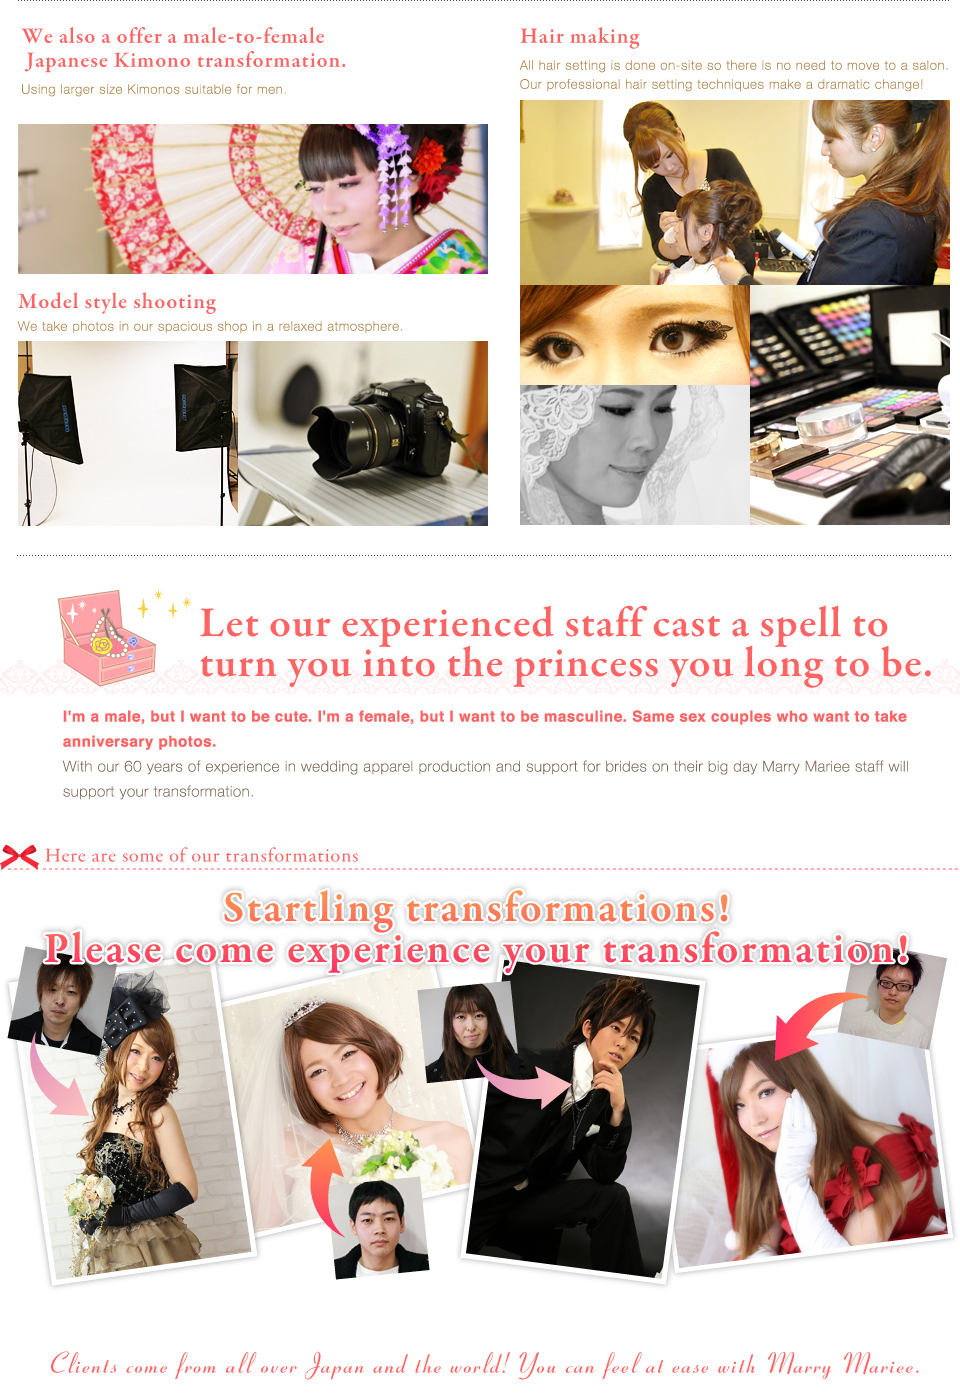 We also a offer a male-to-female  Japanese Kimono transformation. Model style shooting Let our experienced staff cast a spell to turn you long to be! Startling transformations! Please come experience your transformation!